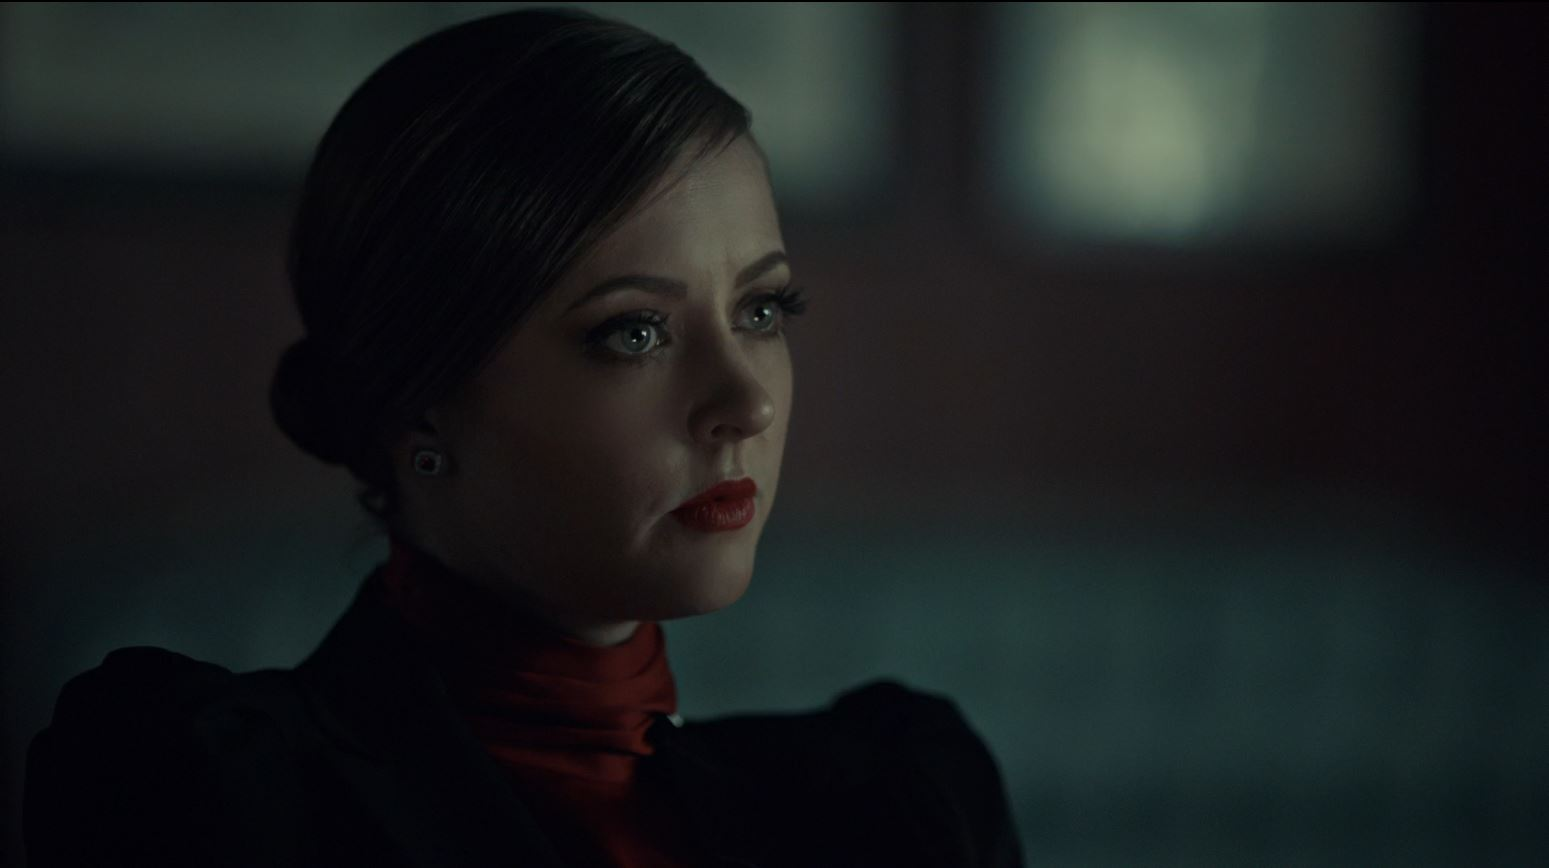 Hannibal Season 2 Episode 8 Su-zakana - Katharine Isabelle  as Margot